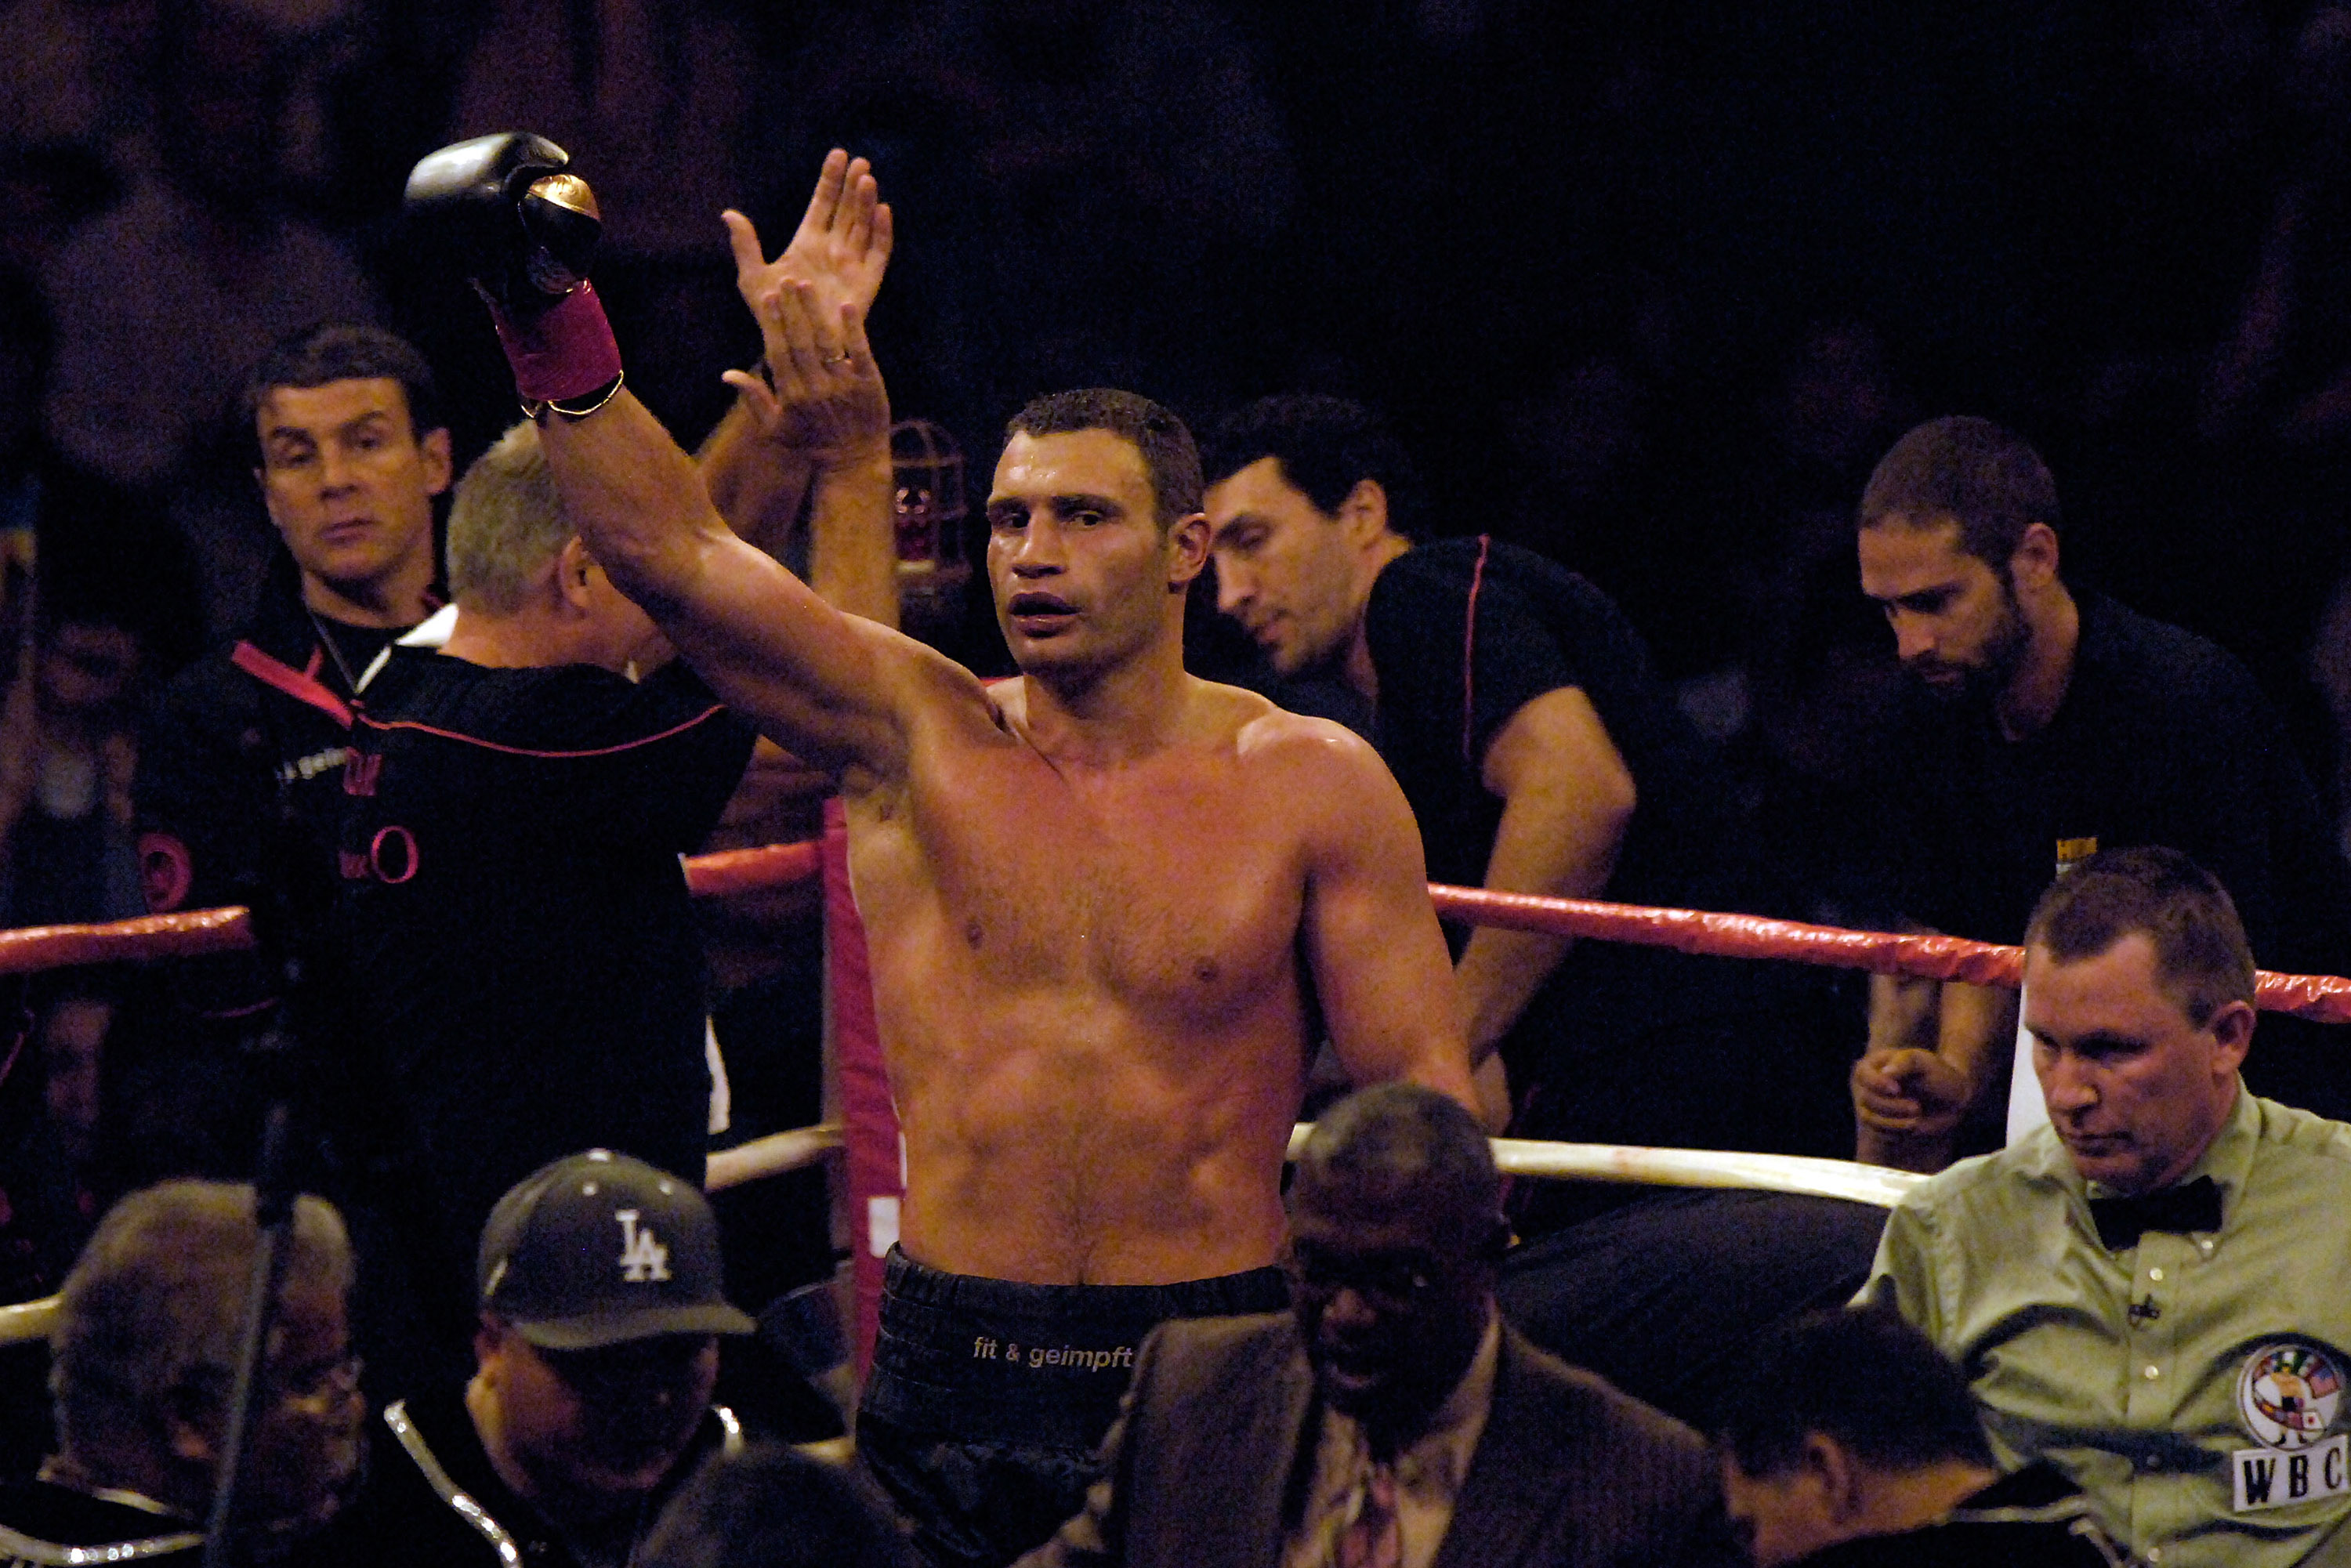 LOS ANGELES, CA - SEPTEMBER 26:  Vitali Klitschko celebrates his victory against opponent Chris Arreola at the Staples Center on September 26, 2009 in Los Angeles, California.  (Photo by Jacob de Golish/Getty Images)